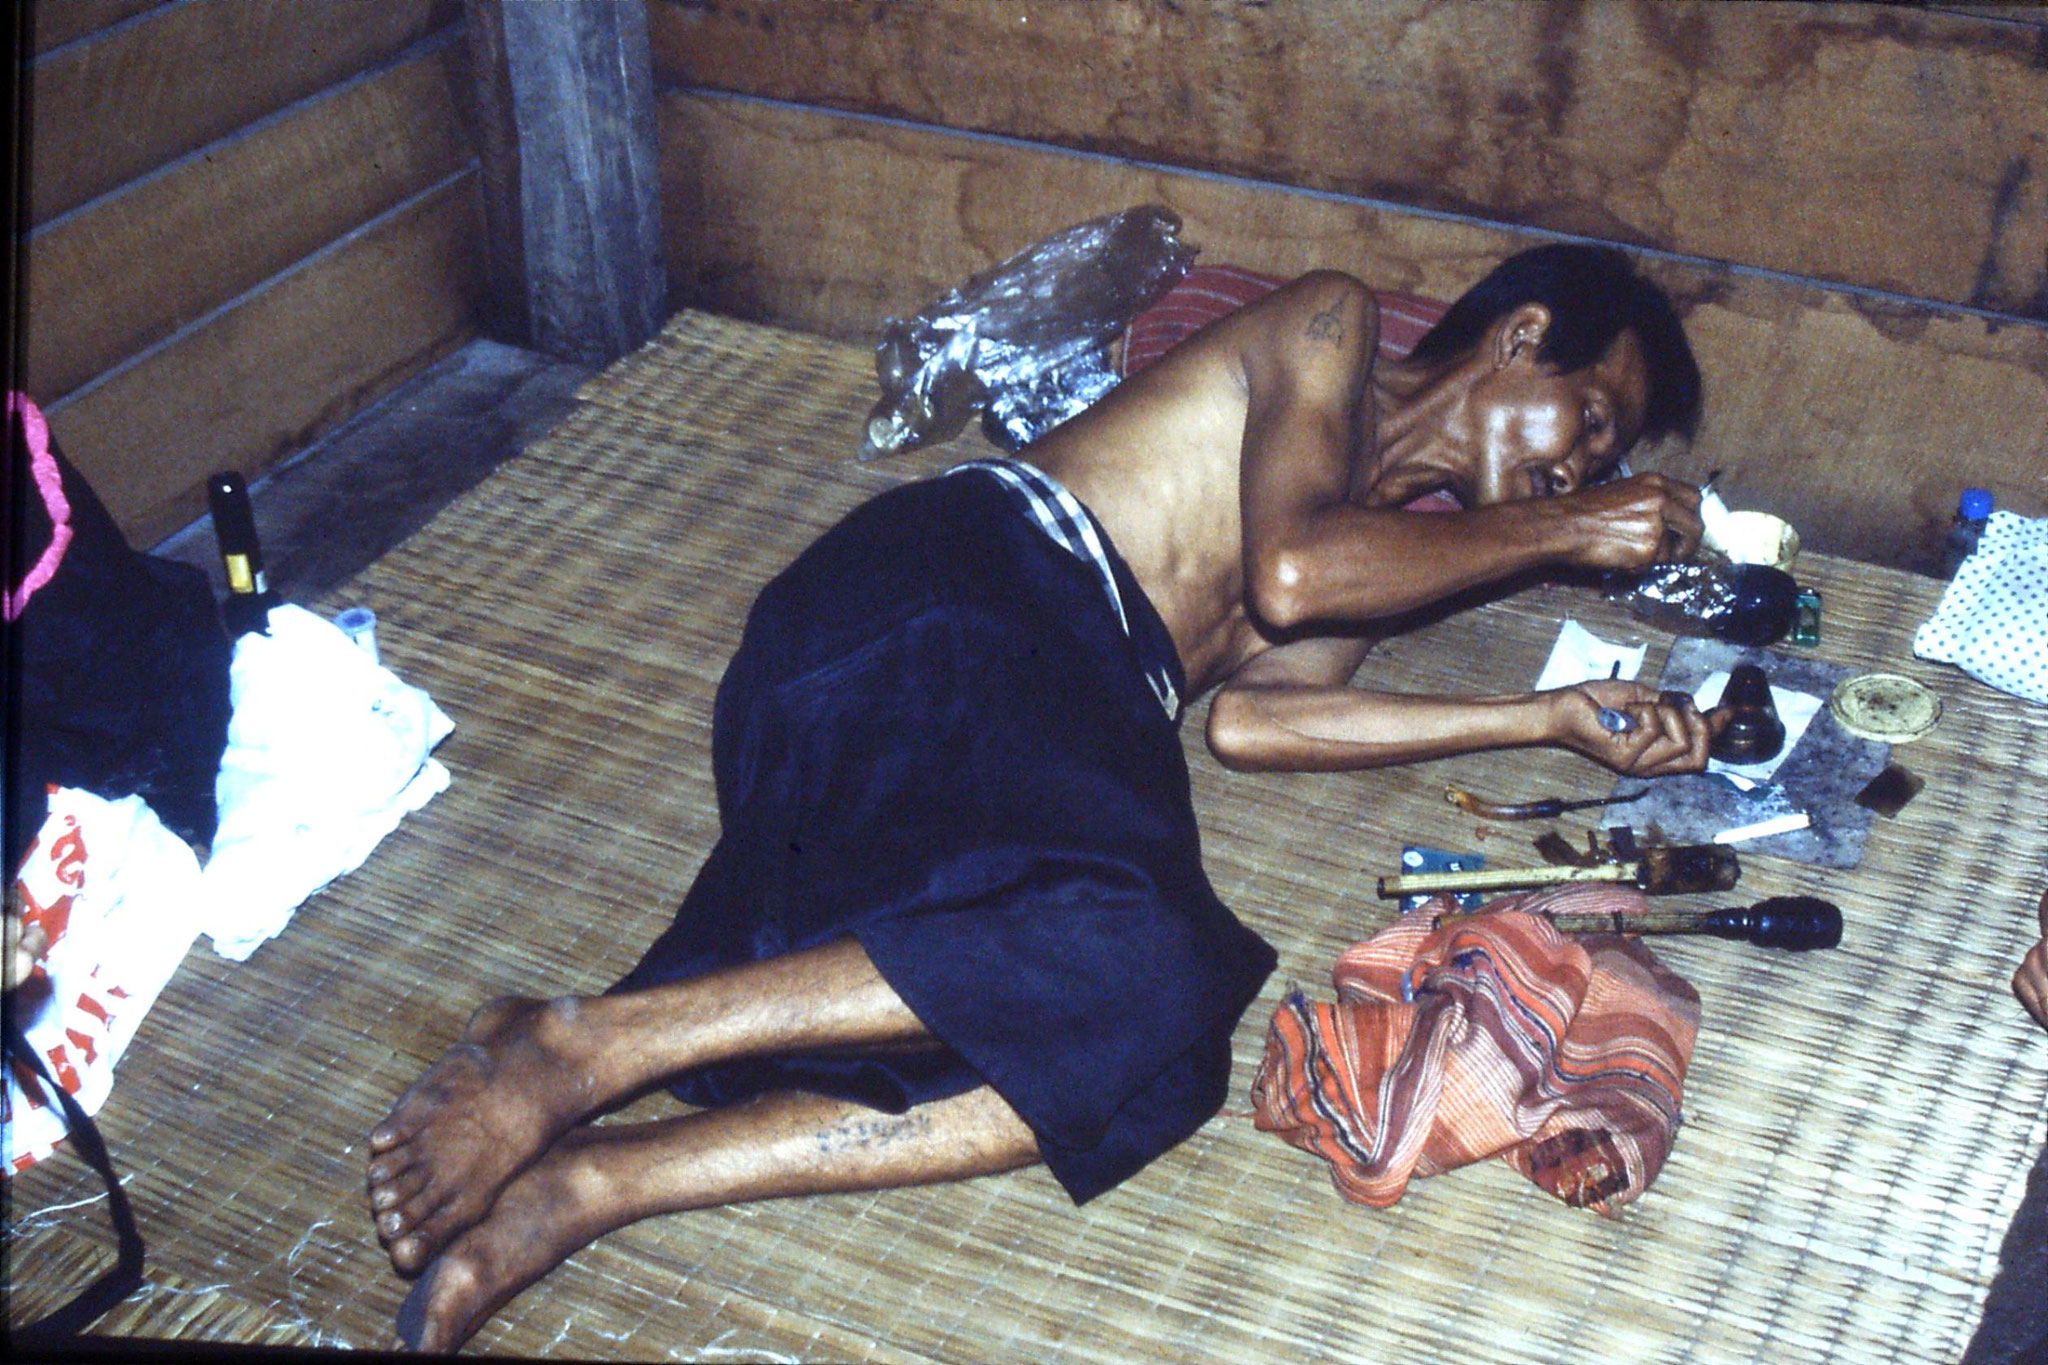 12/6/1990: 36: Trek - Hue Kom Karen village, man smoking opium